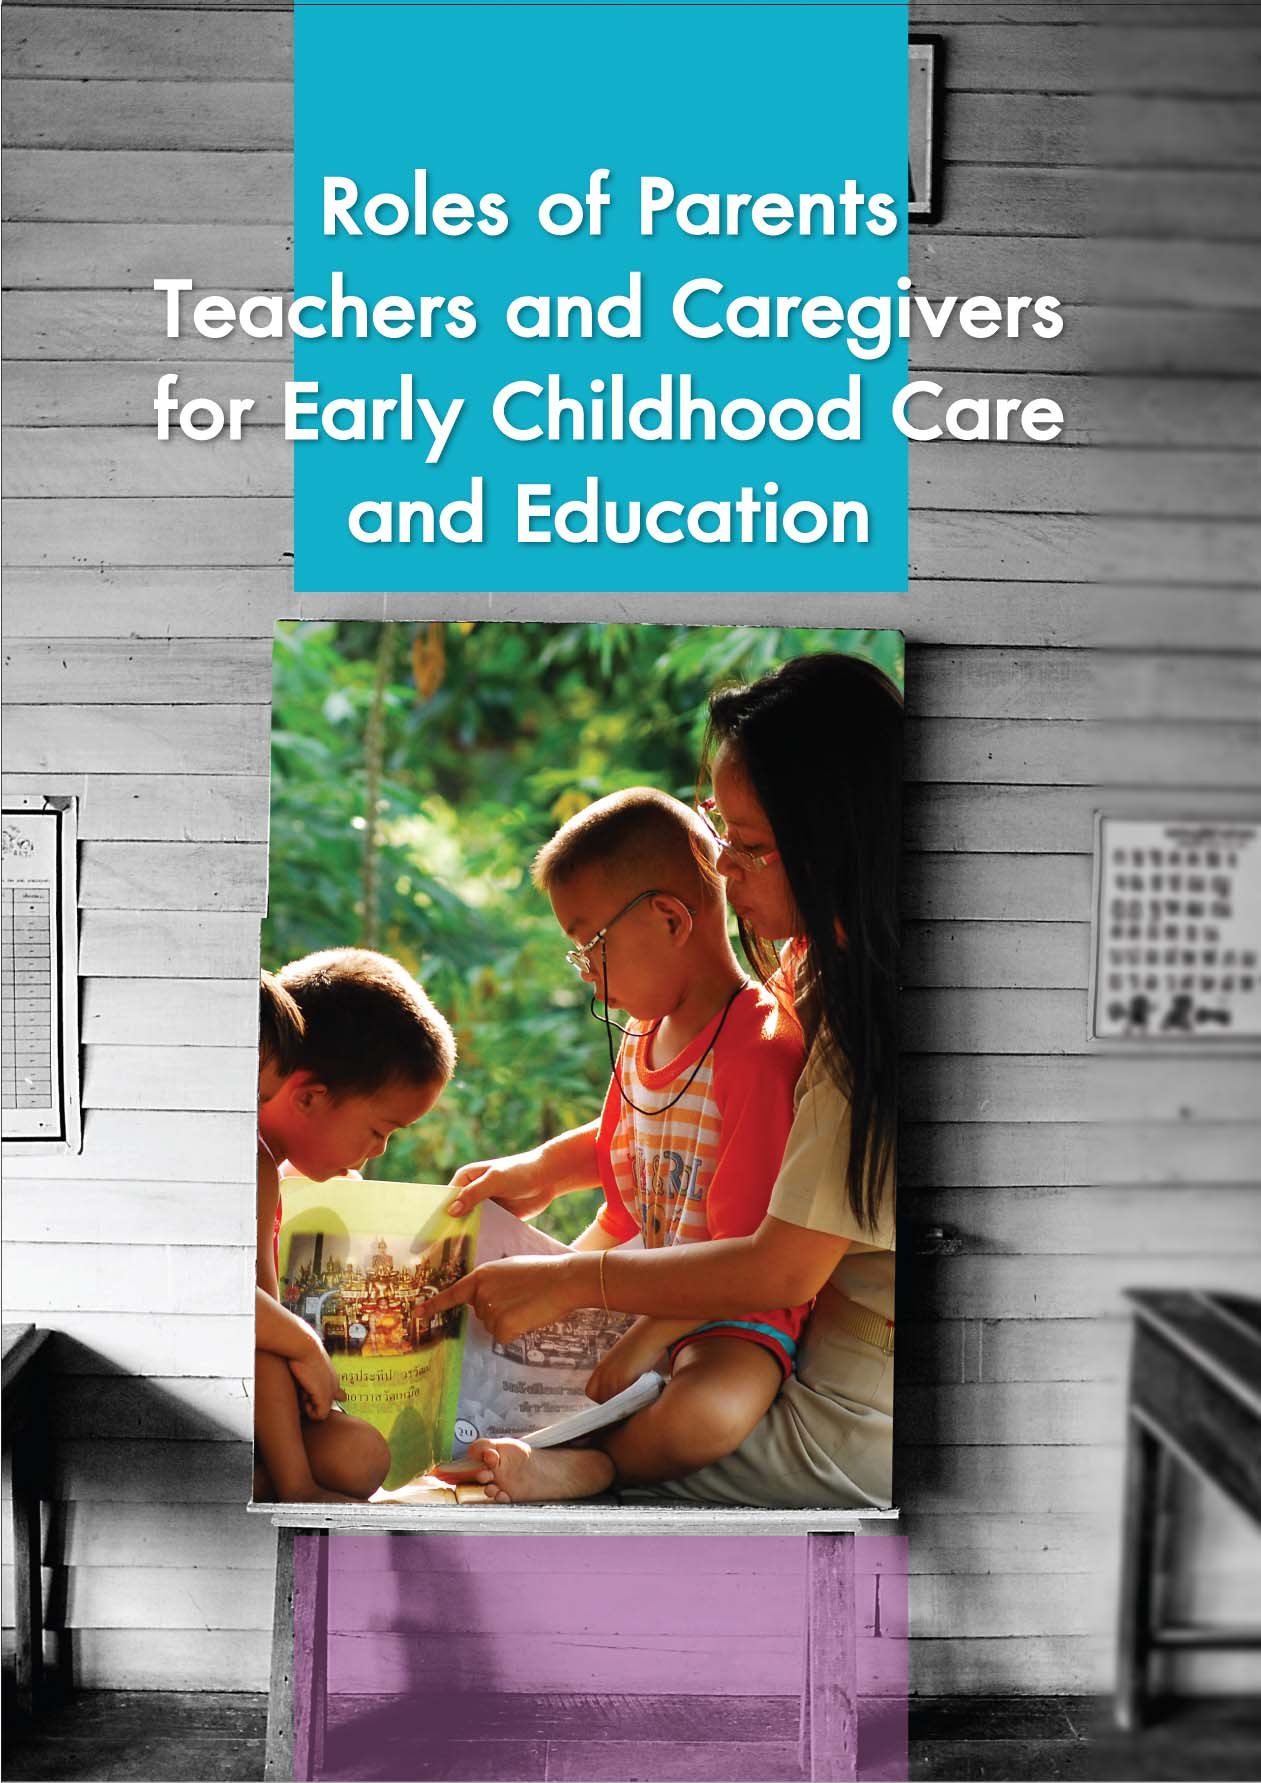 Roles of Parents Teachers and Caregivers for the Early Childhood Care and Development